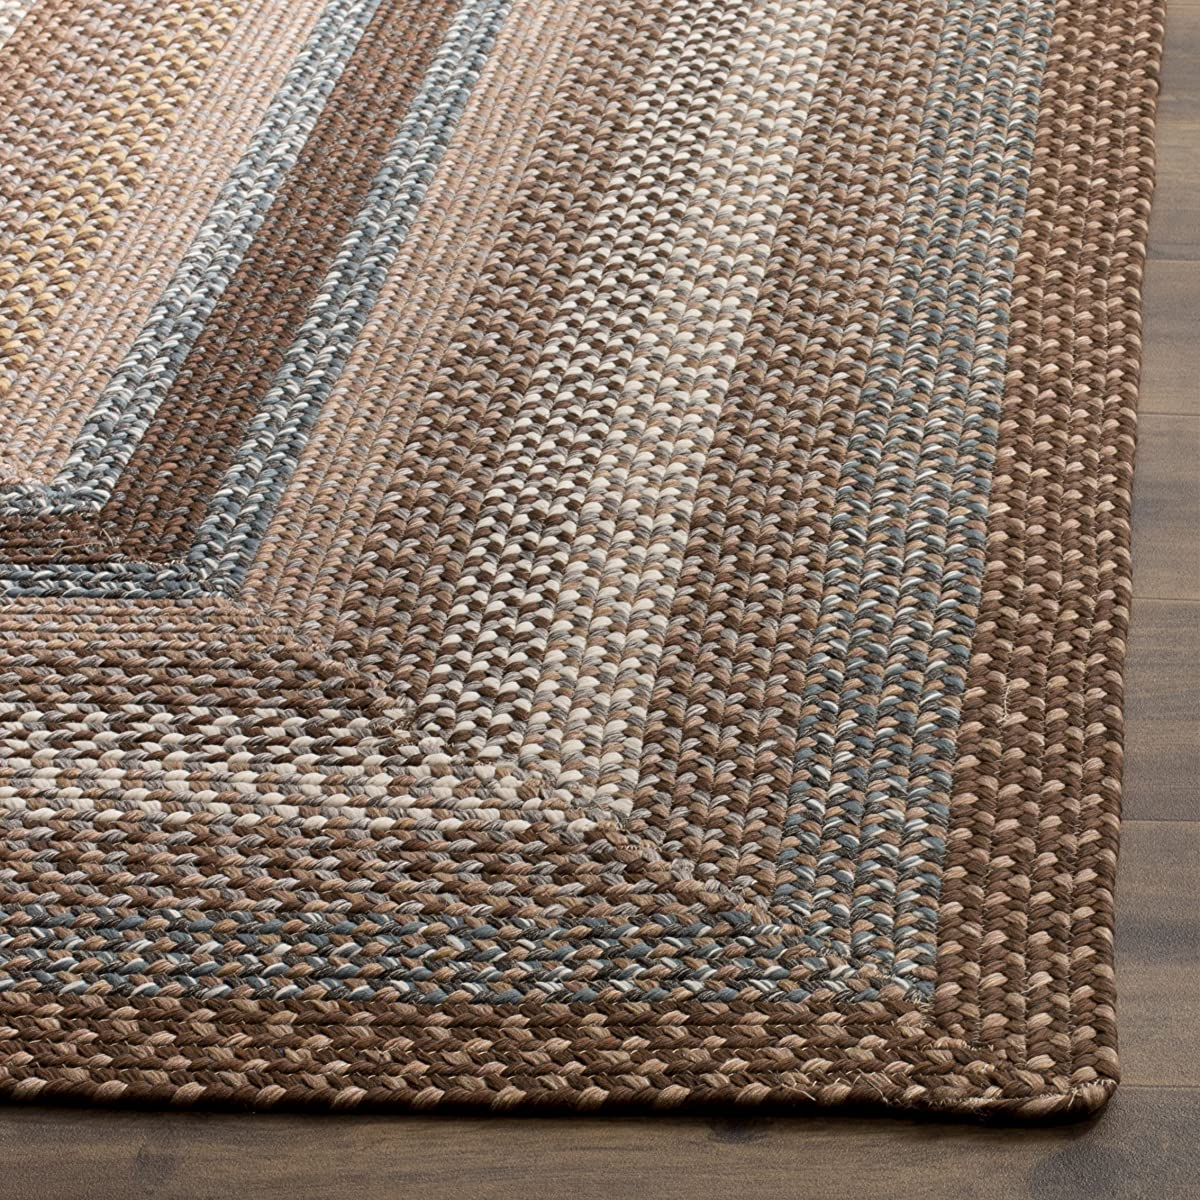 Safavieh Braided Collection BRD313A Hand Woven Brown and Multi Square Area Rug (6 Square)